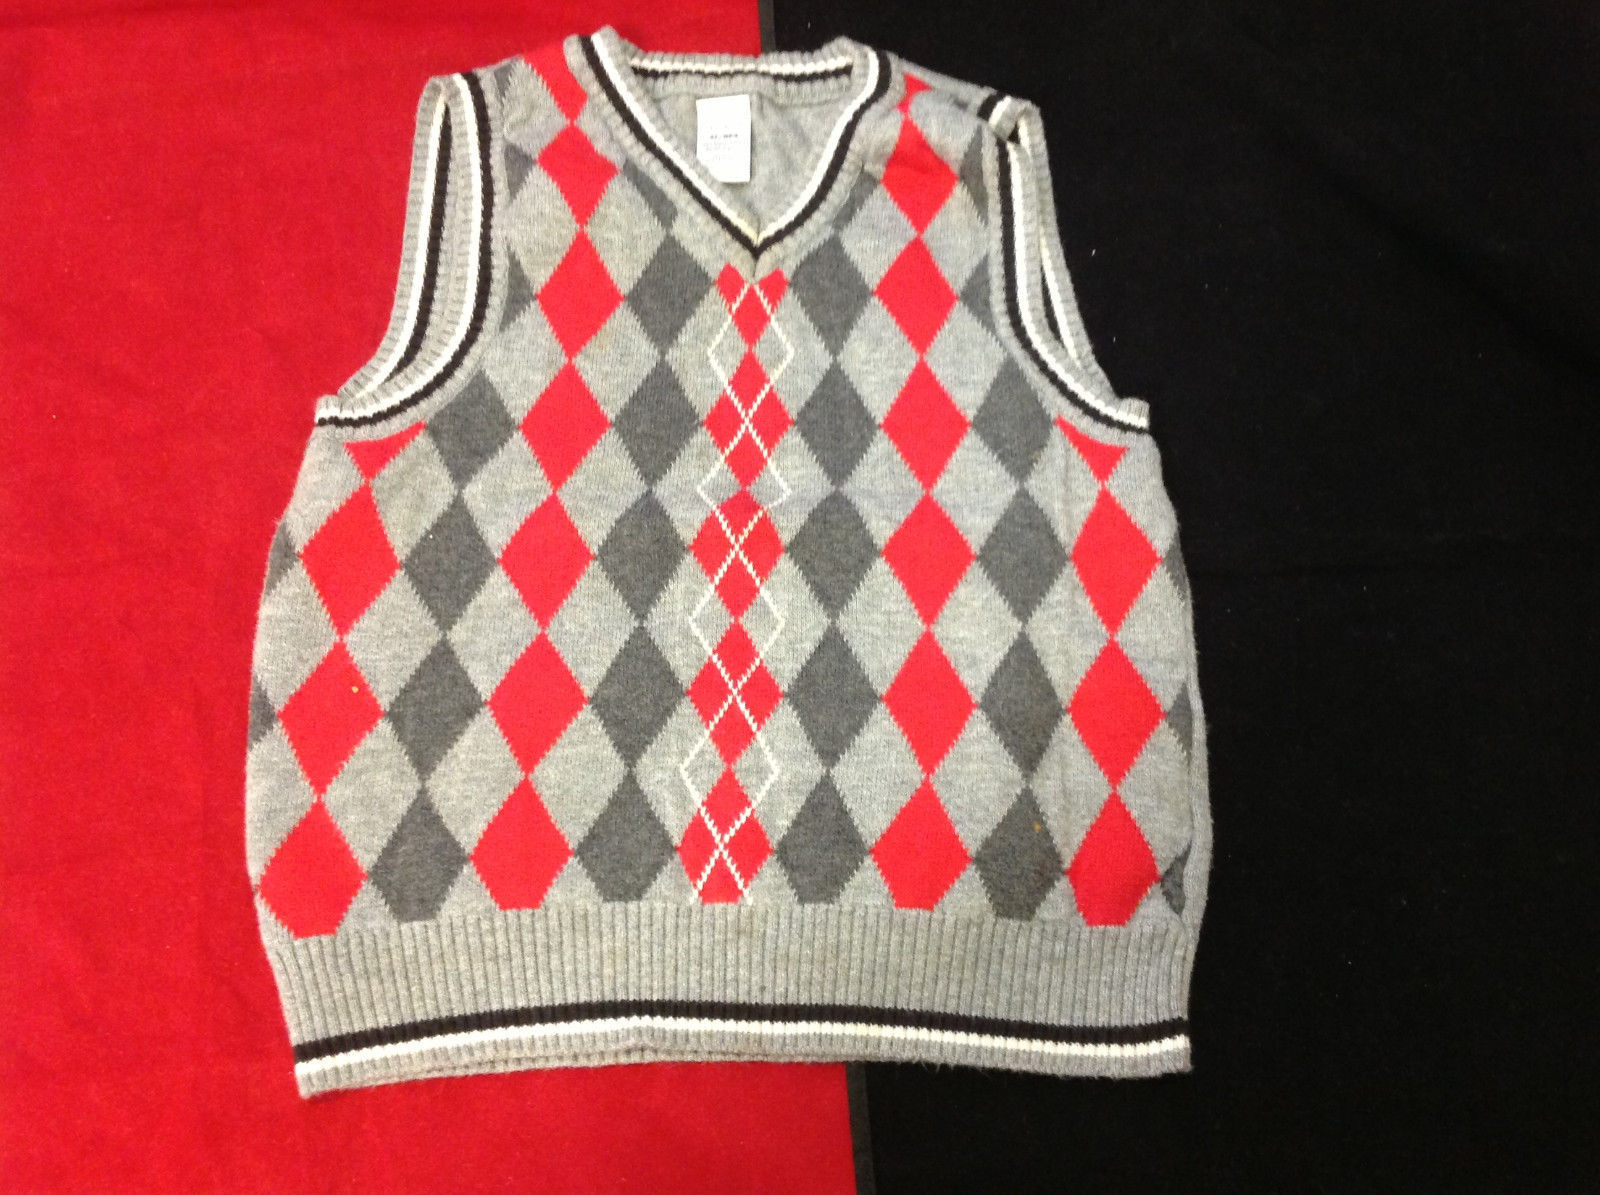 George Brand Boys Red and Gray Argyle Knit Vest size 4T Toddler